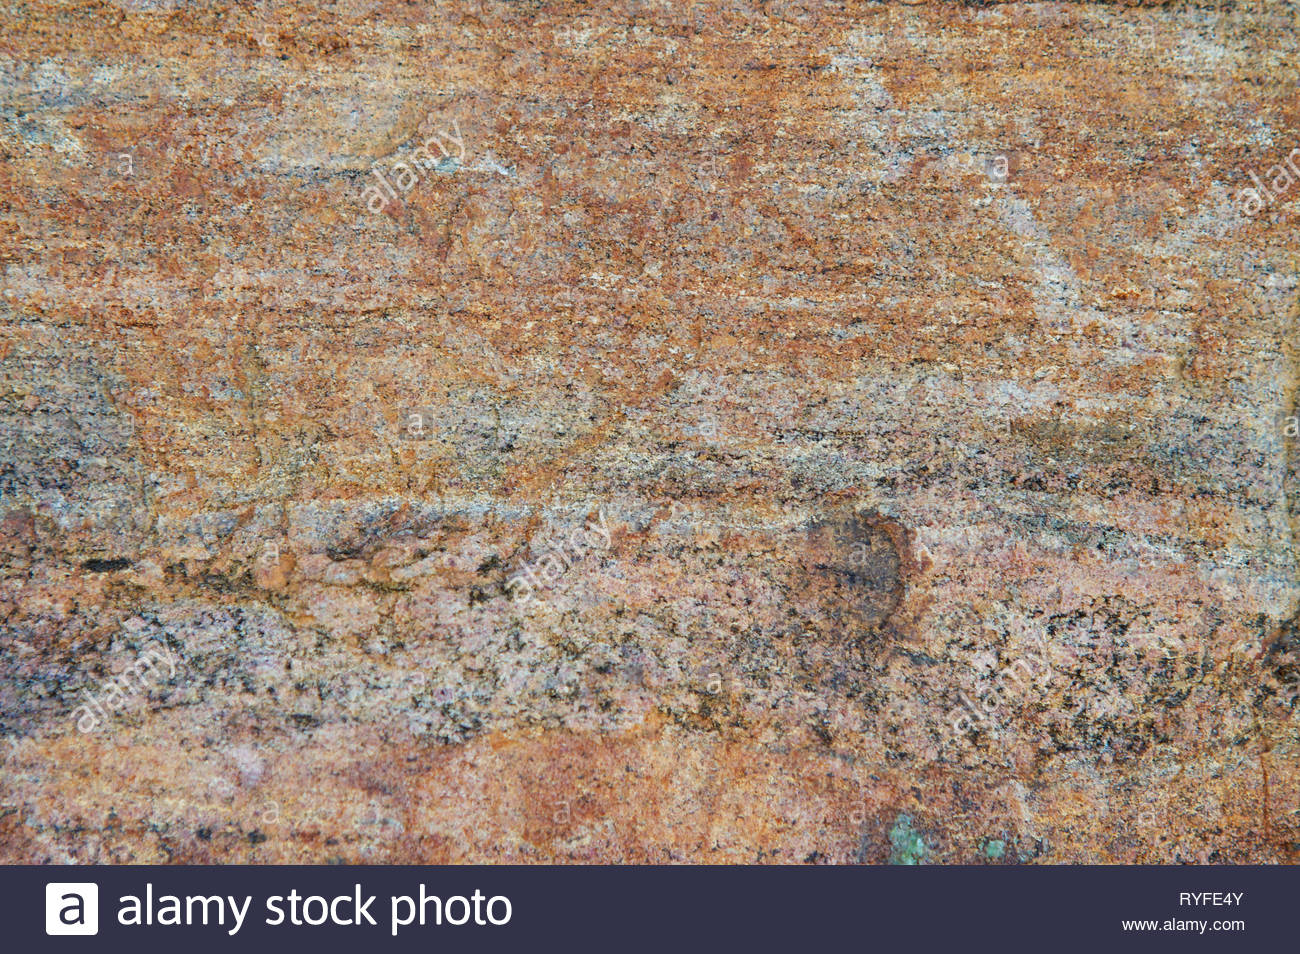 Closeup image of detail on rock wall in rich, earthy tones. - Stock Image